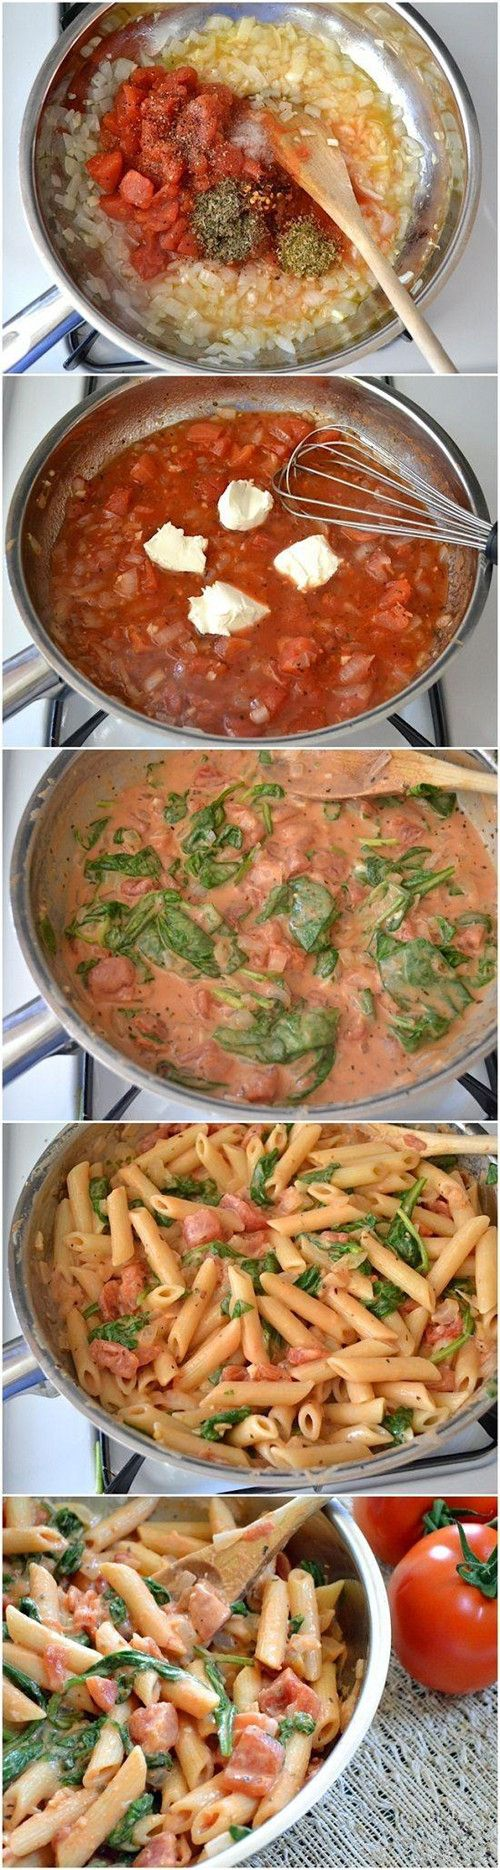 Creamy Tomato And Spinach Pasta - Love with recipe